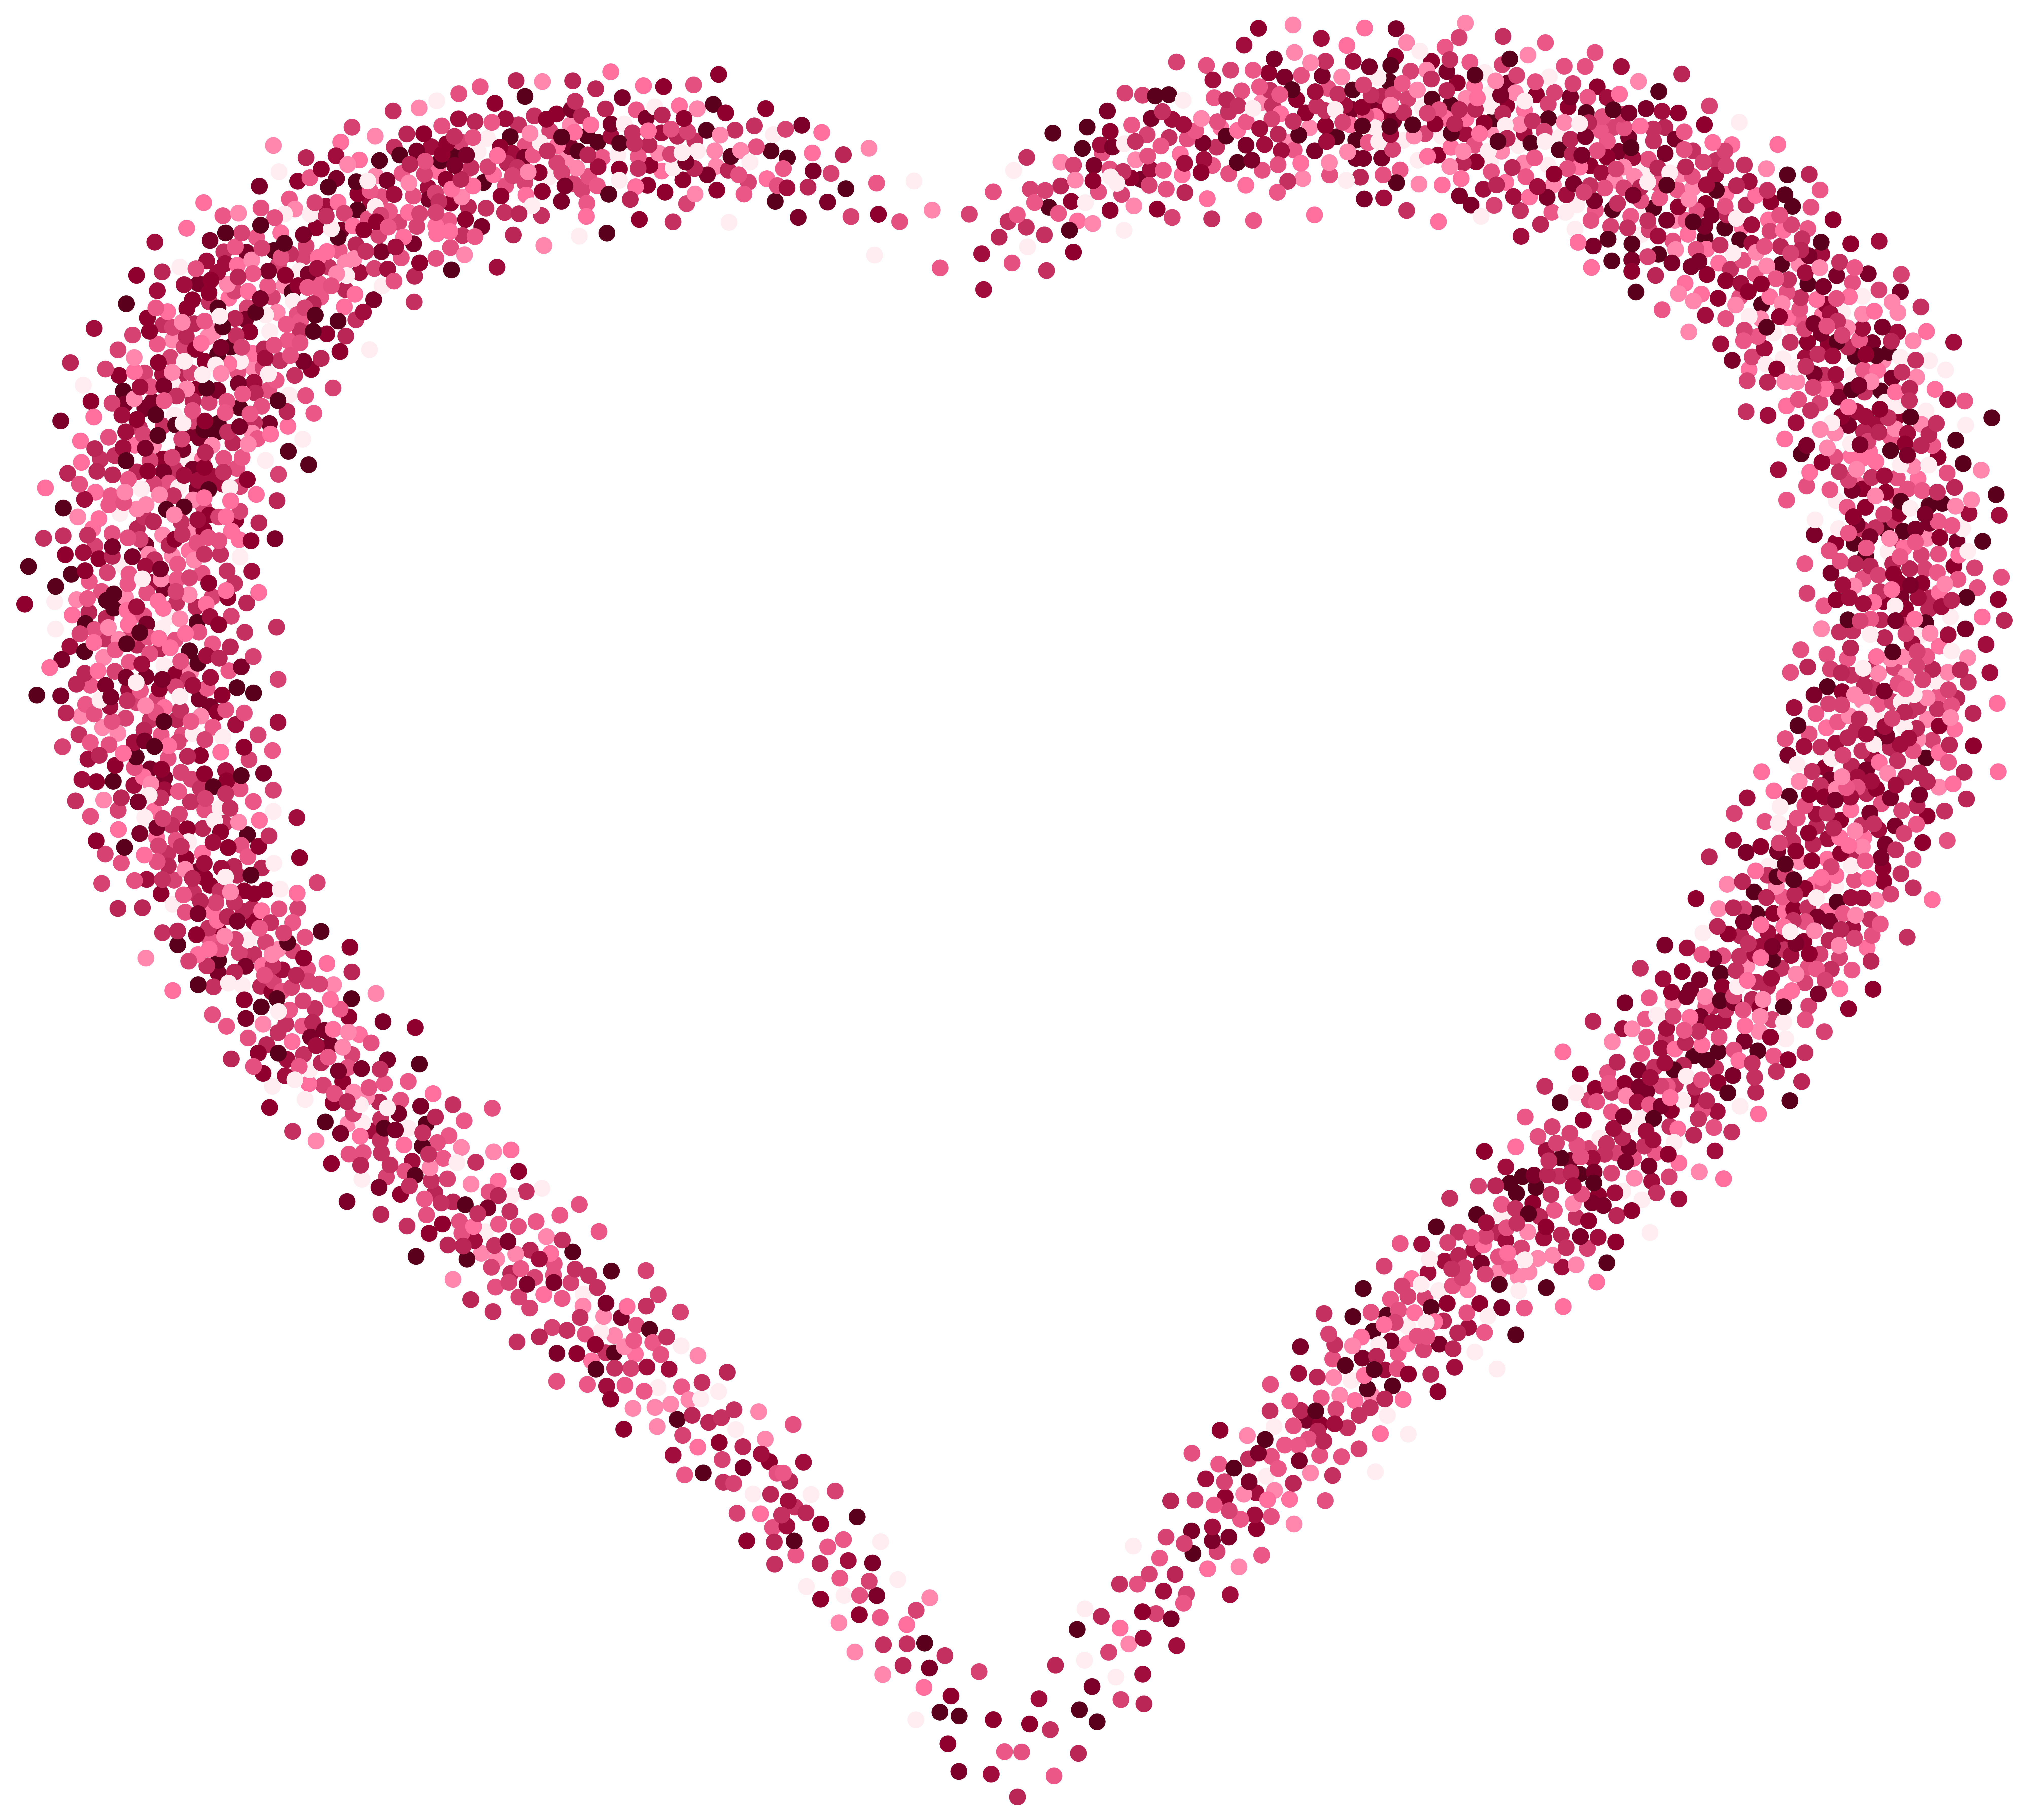 Decorative Pink Heart PNG Image.